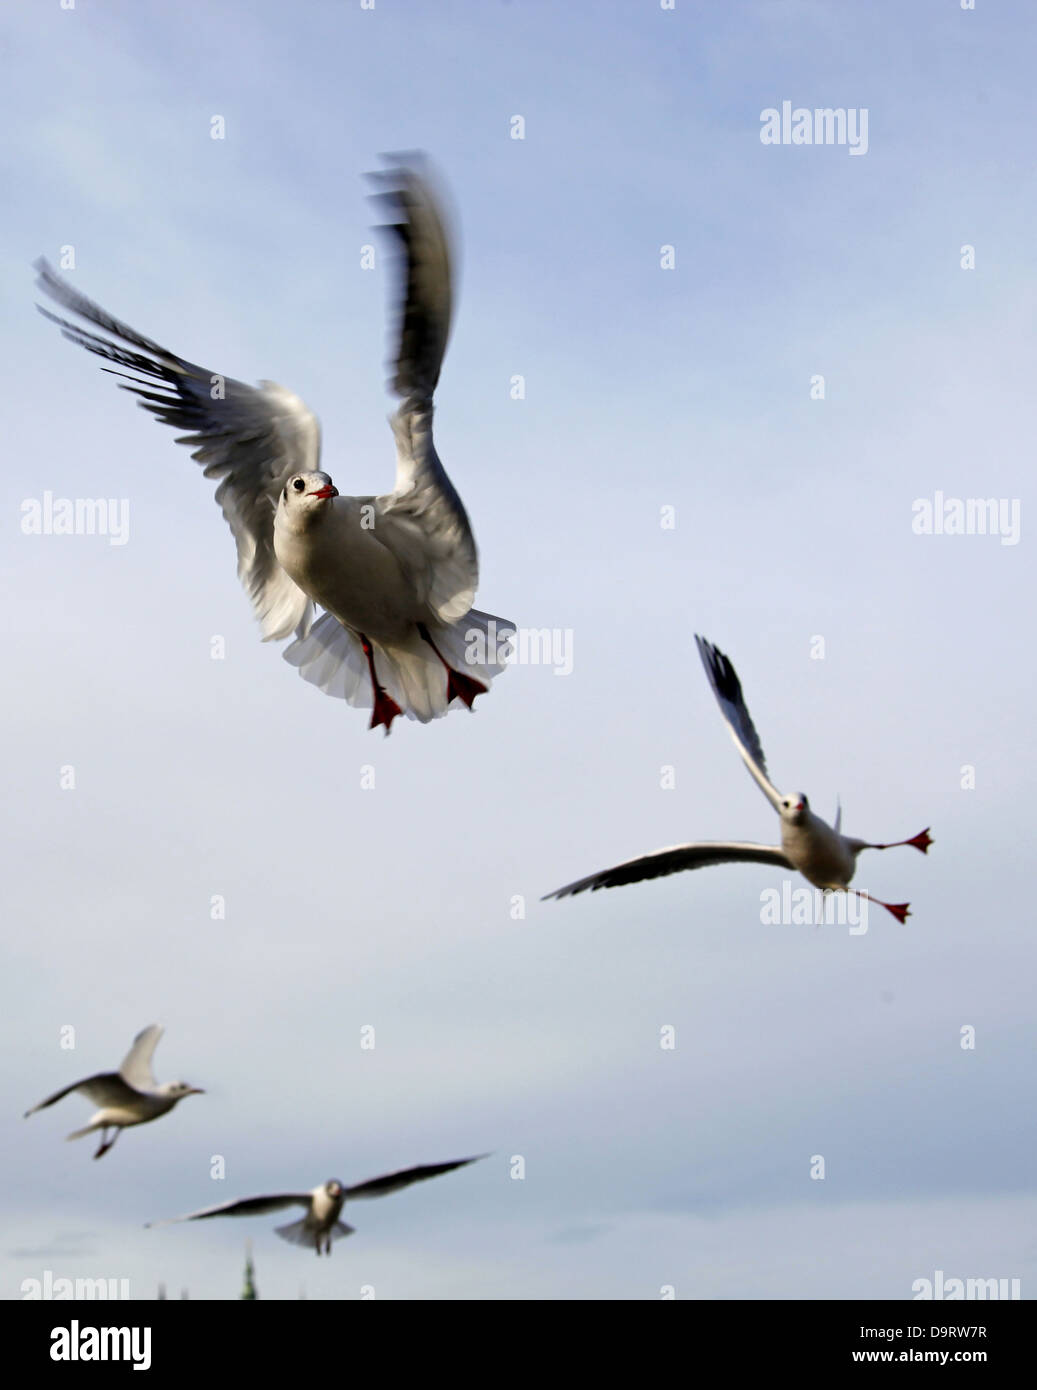 BLACK-HEADED GULLS PRAGUE & CZECH REPUBLIC 31 December 2012 Stock Photo